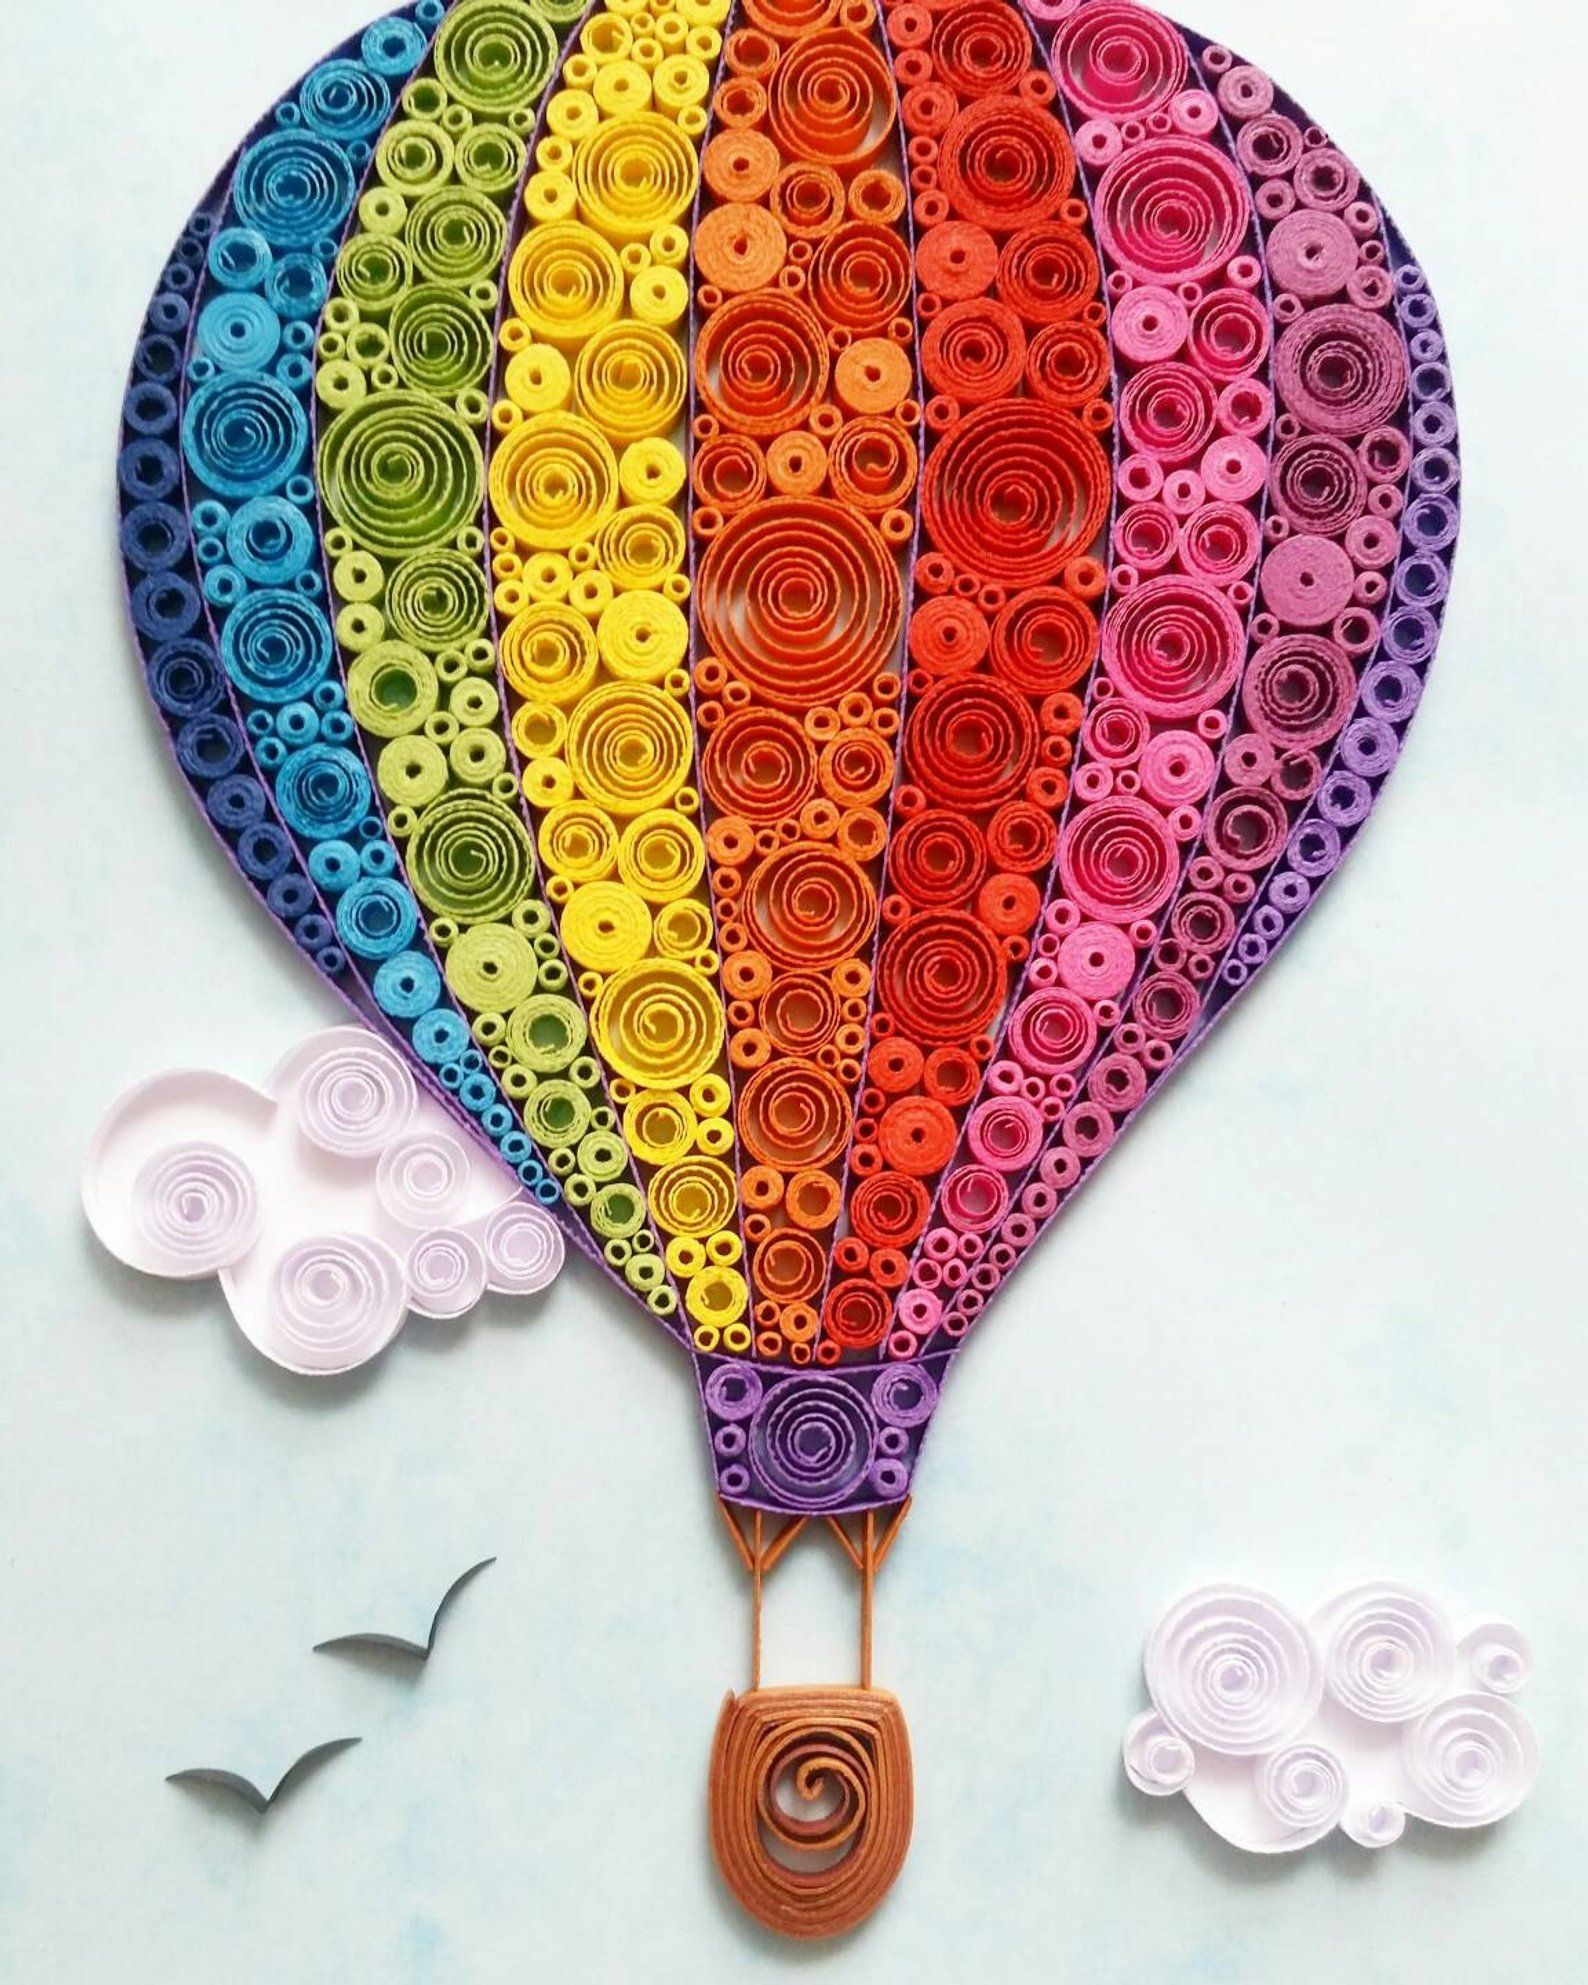 Hot Air Balloon Wall Art Hot Air Balloon Paper Art Hot Air Etsy Quilling Paper Craft Quilling Designs Hot Air Balloon Paper